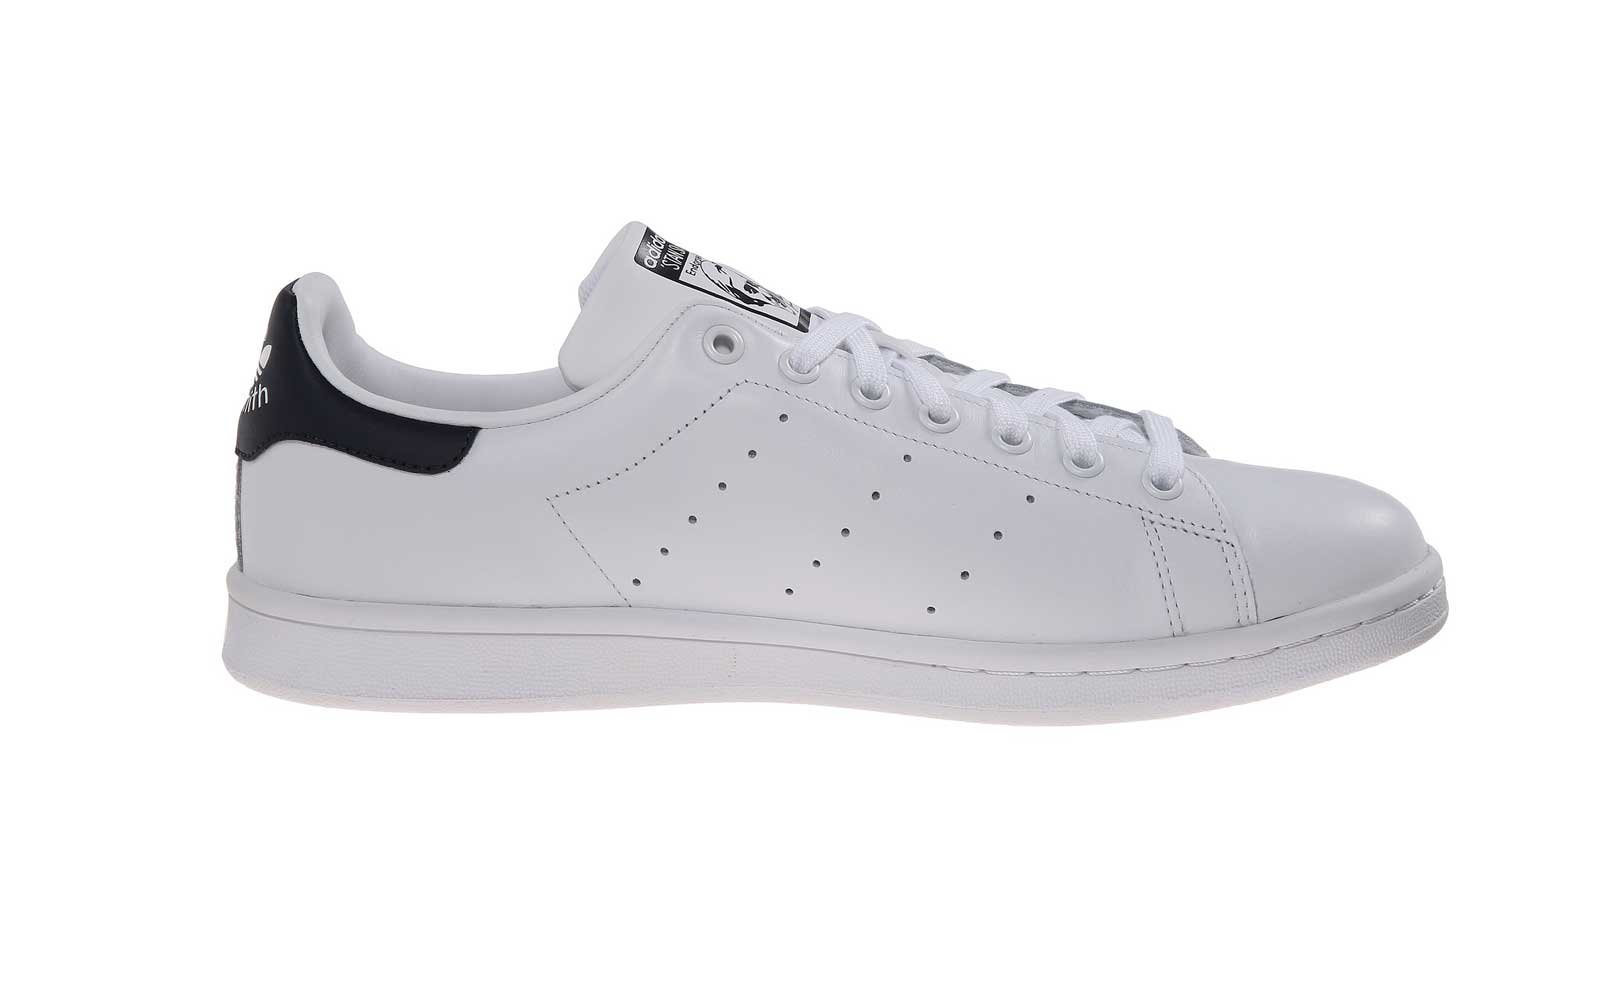 Most Comfortable Skate Shoes For Walking